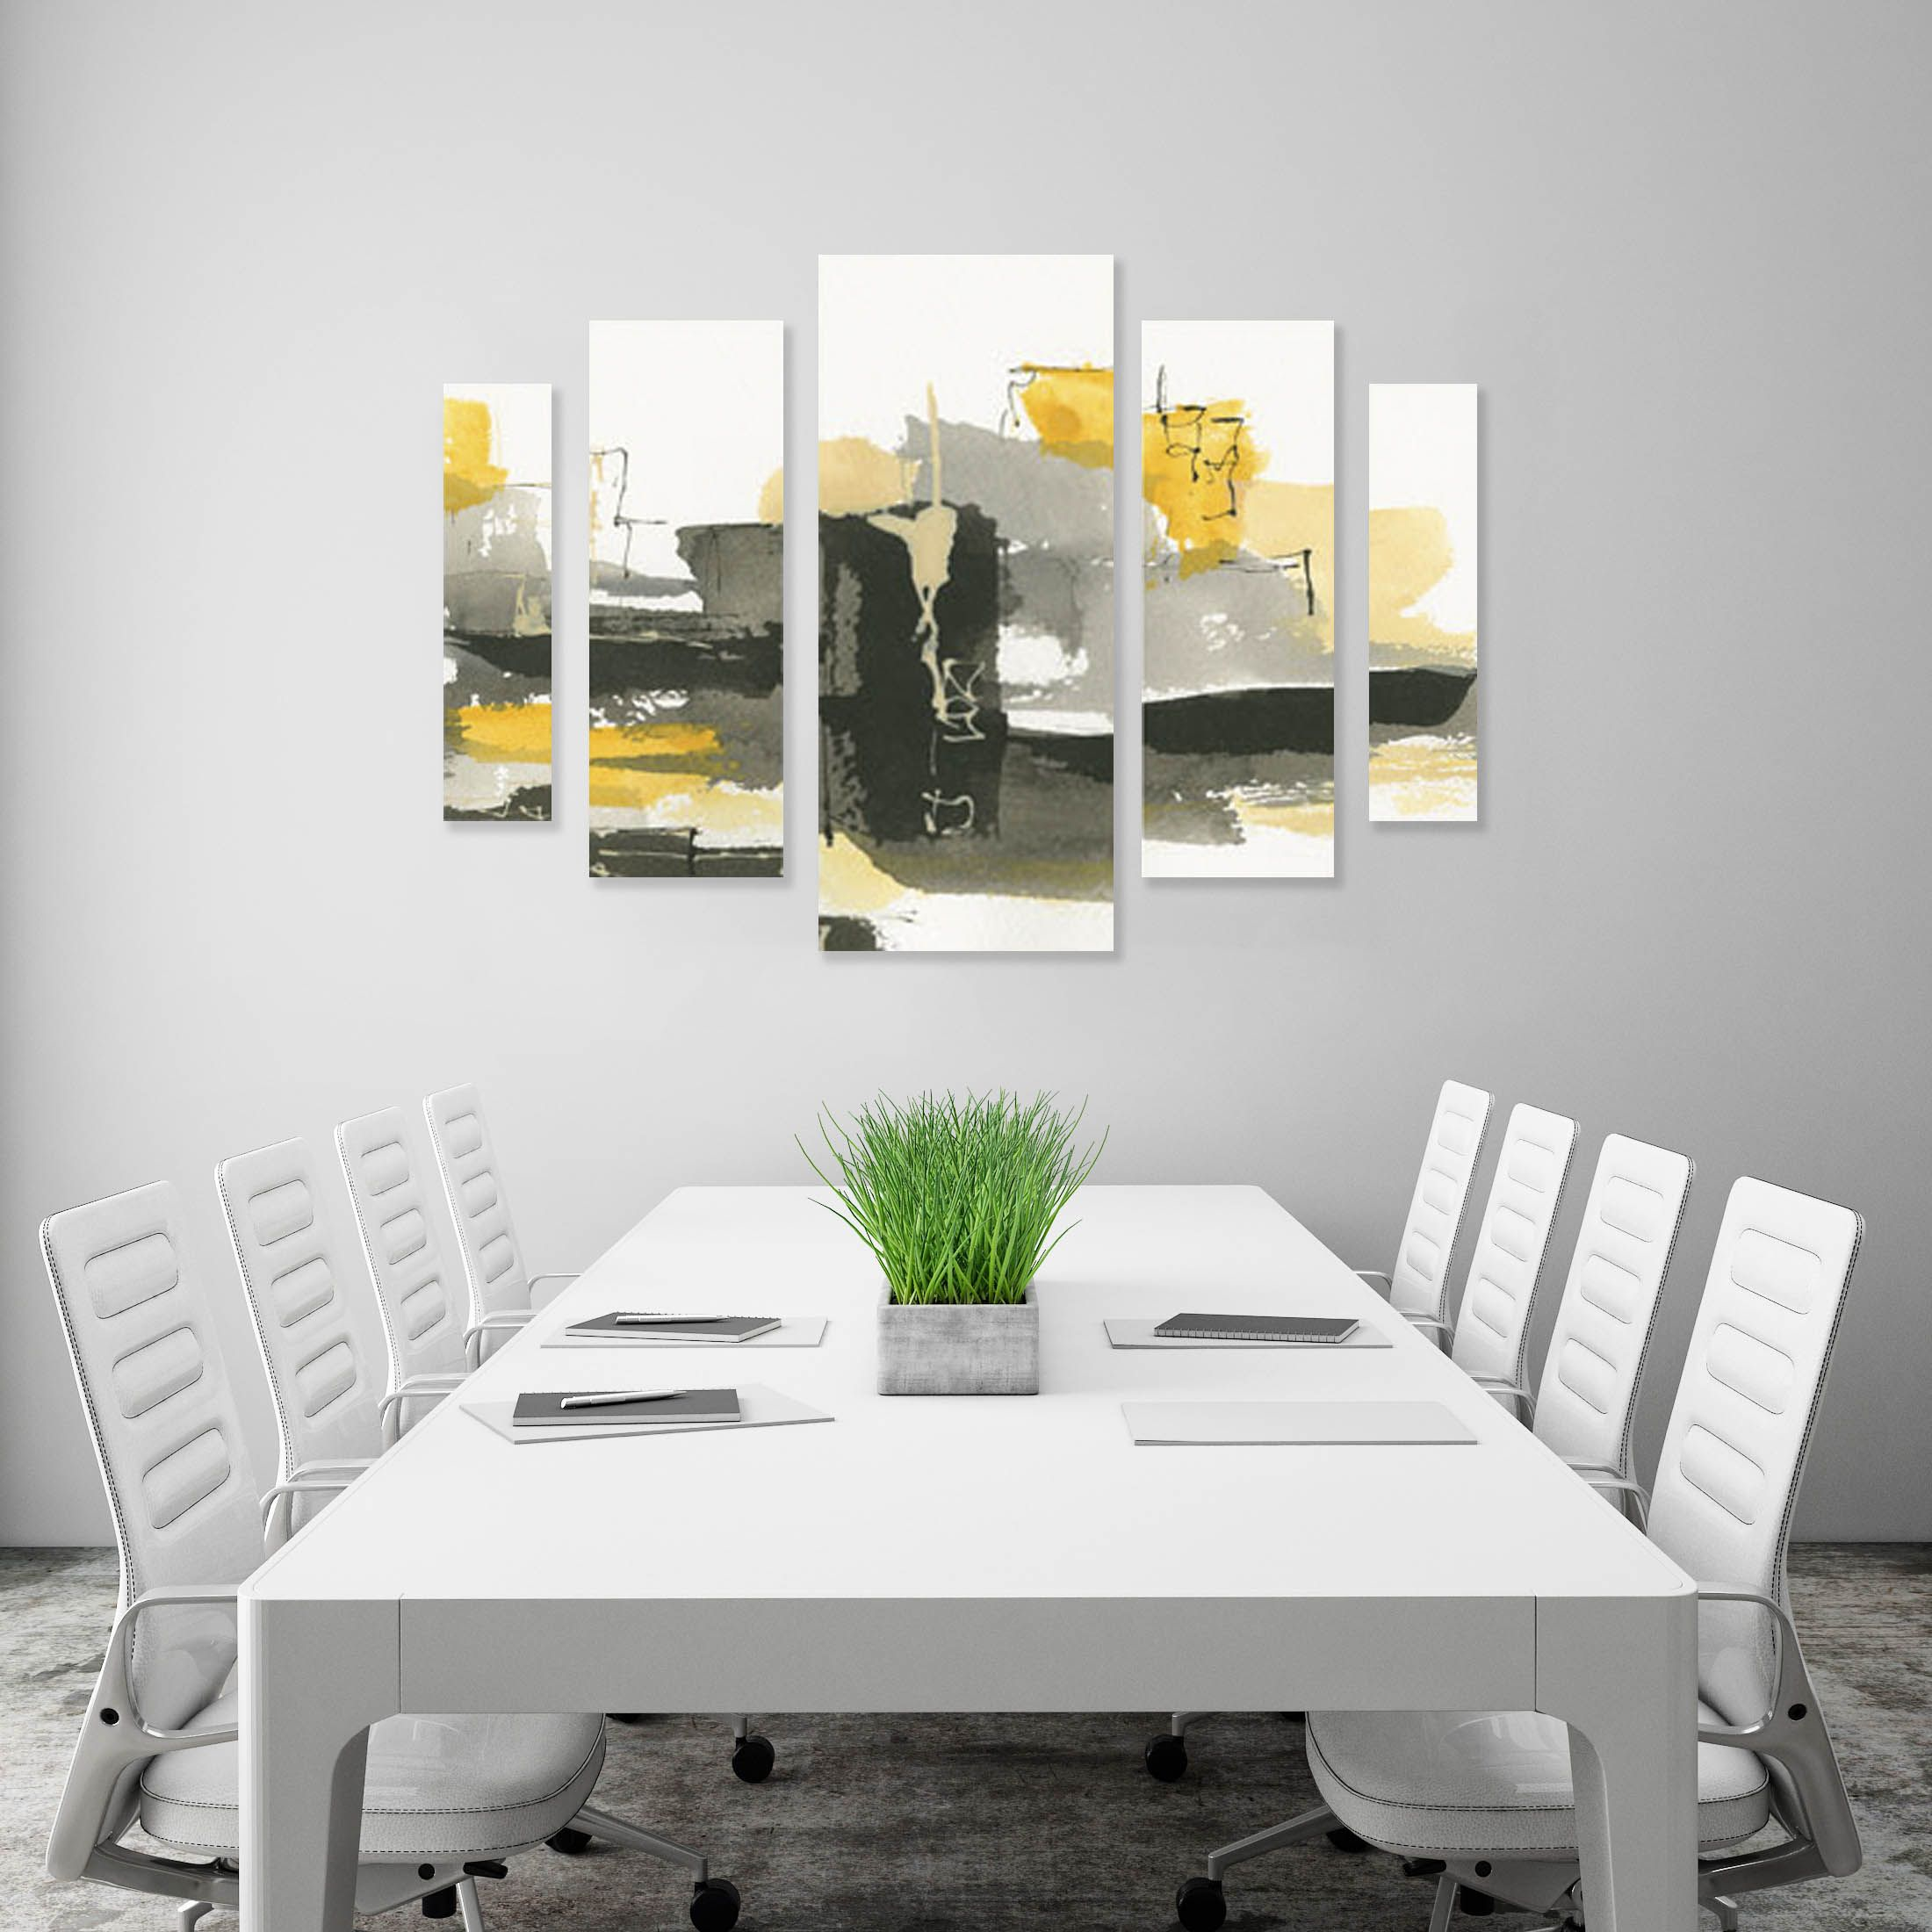 Call Text For Sizes Pricing T 317 402 5040 E Sgooding Corporatefineartgroup Corporate Office Design Decor Art